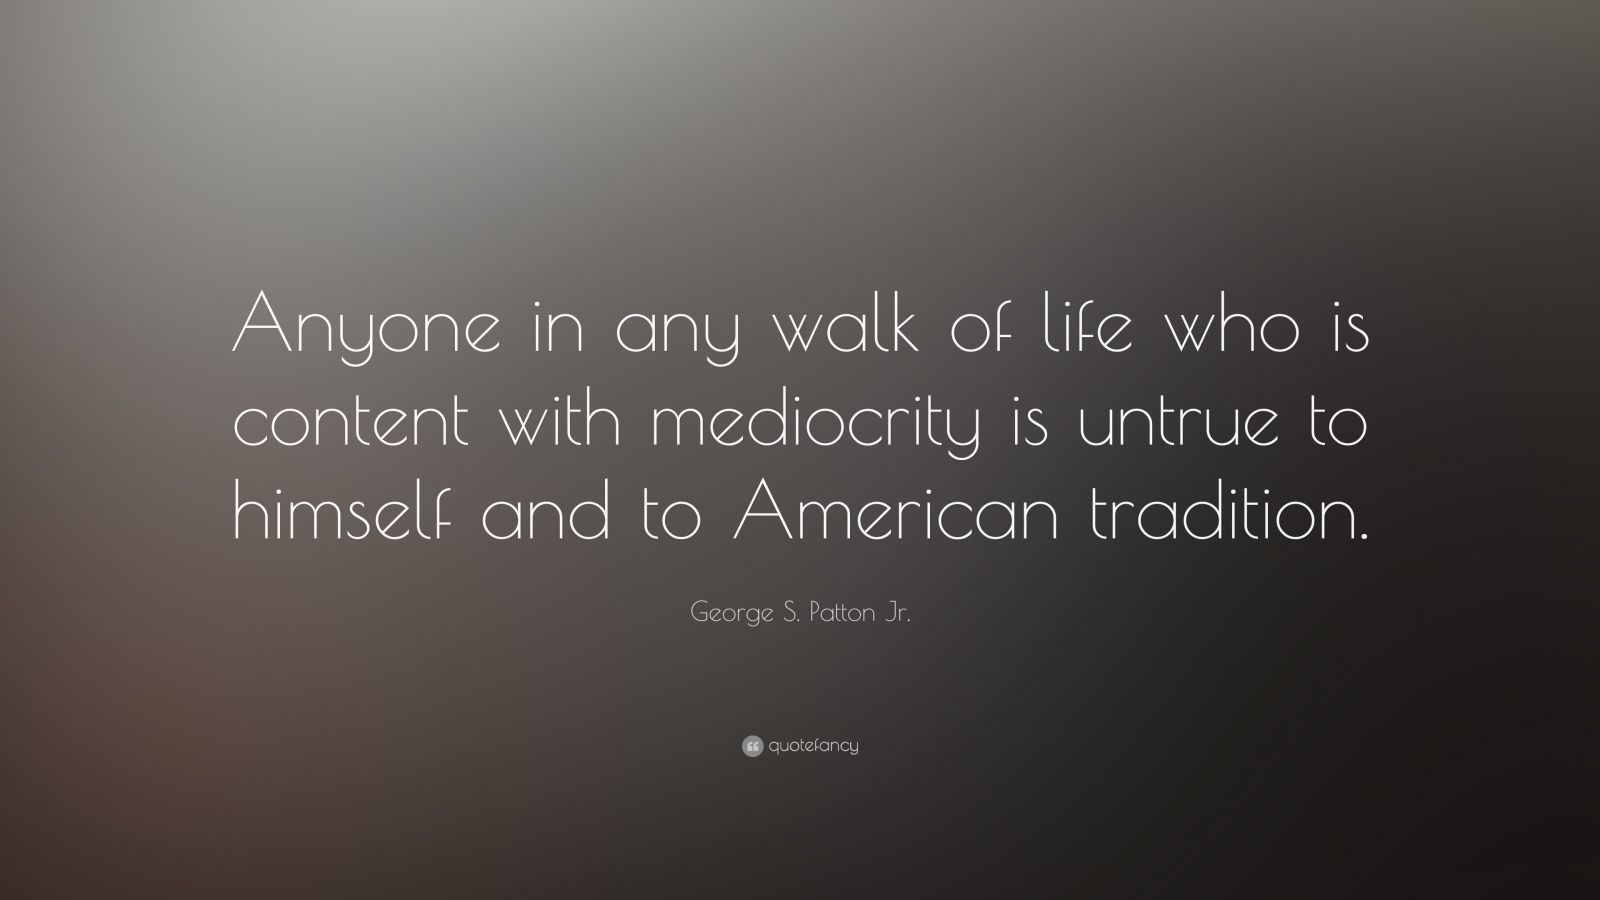 """George S. Patton Jr. Quote: """"Anyone in any walk of life who is content with mediocrity is untrue to himself and to American tradition."""""""